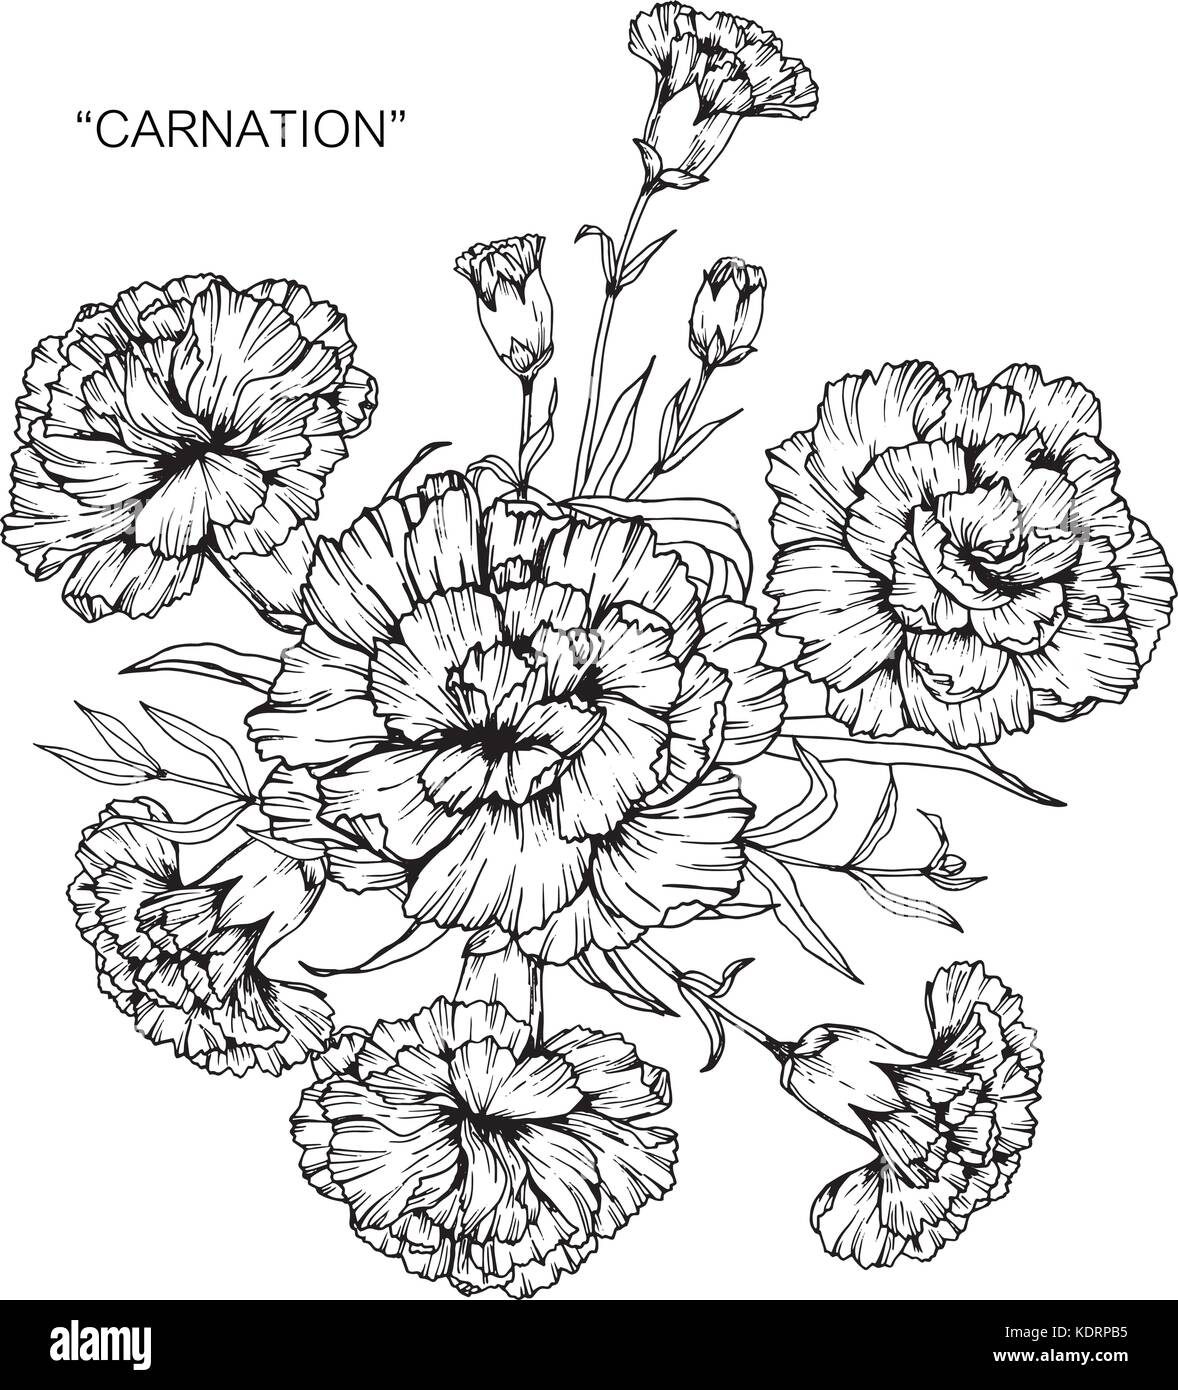 Bouquet of carnation flowers drawing stock vector art illustration bouquet of carnation flowers drawing izmirmasajfo